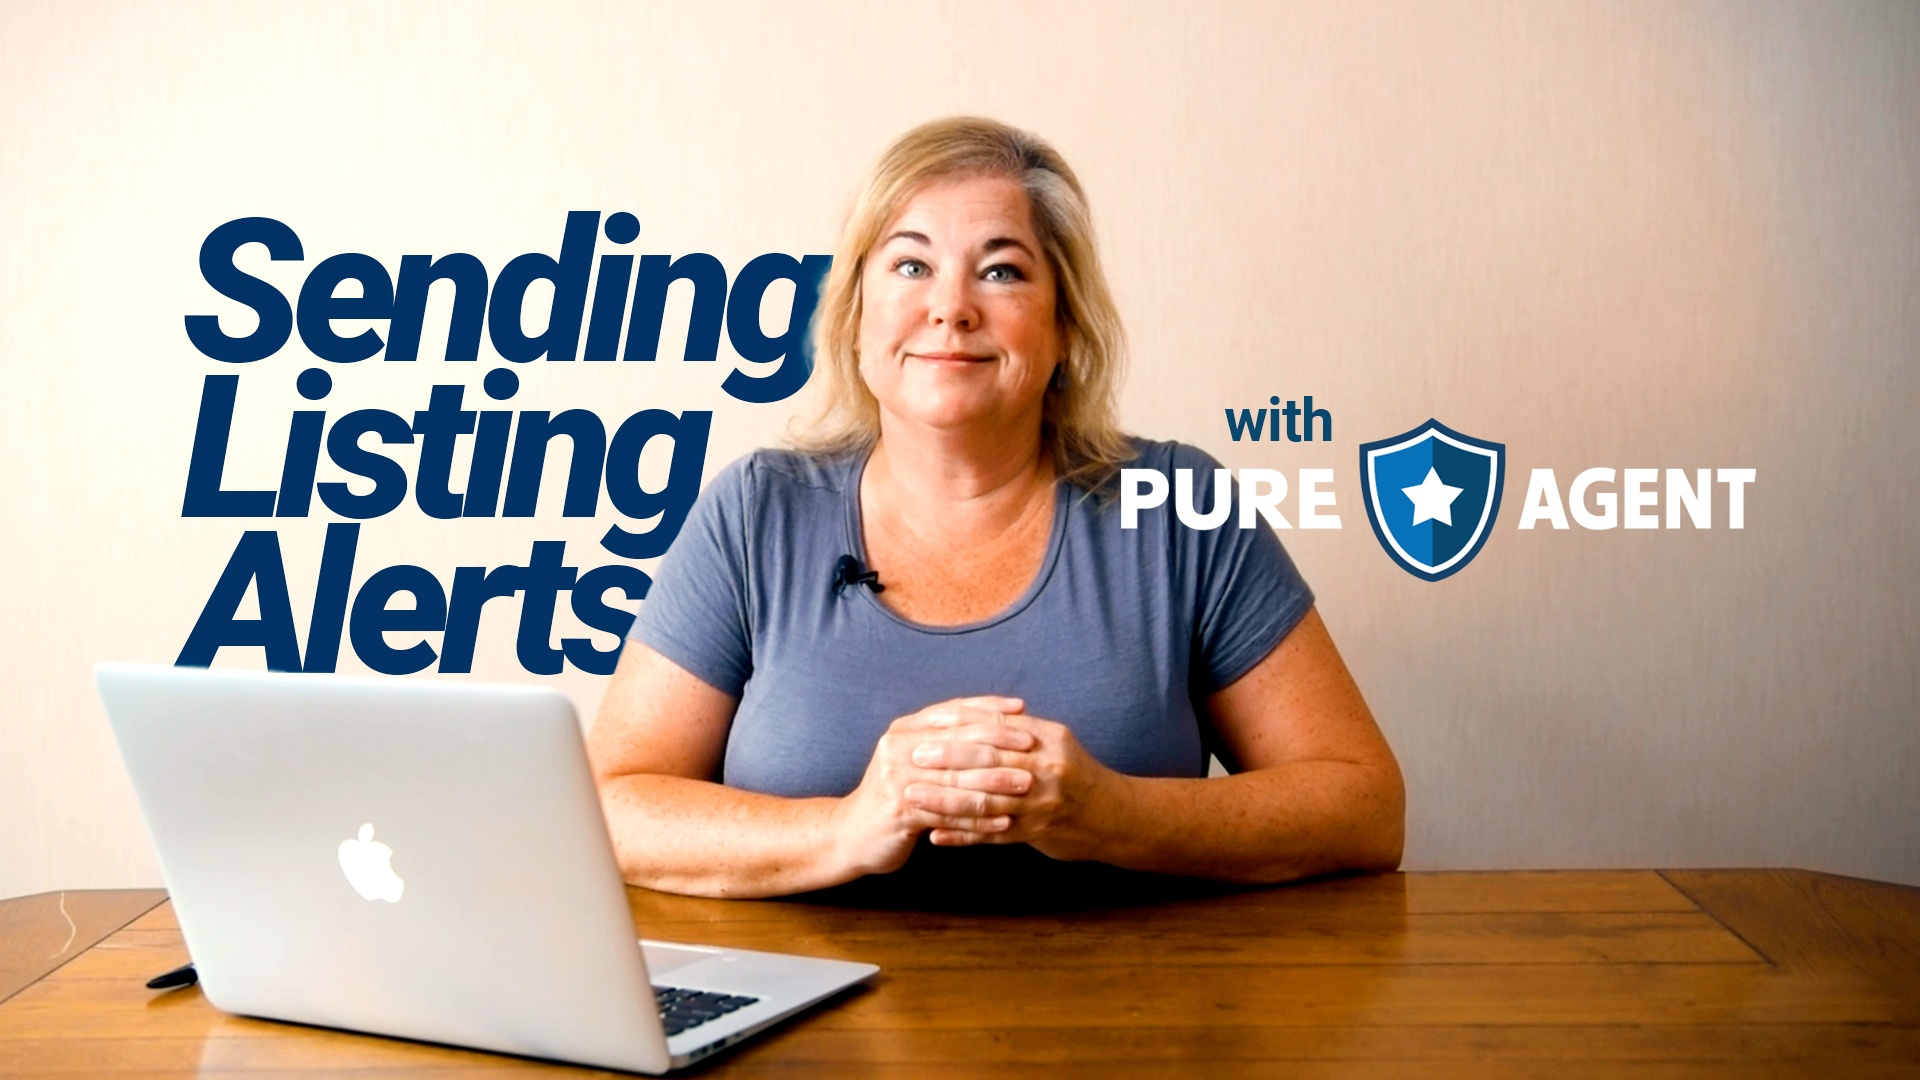 How To Video - Sending Listing Alerts for Repeat Website Traffic